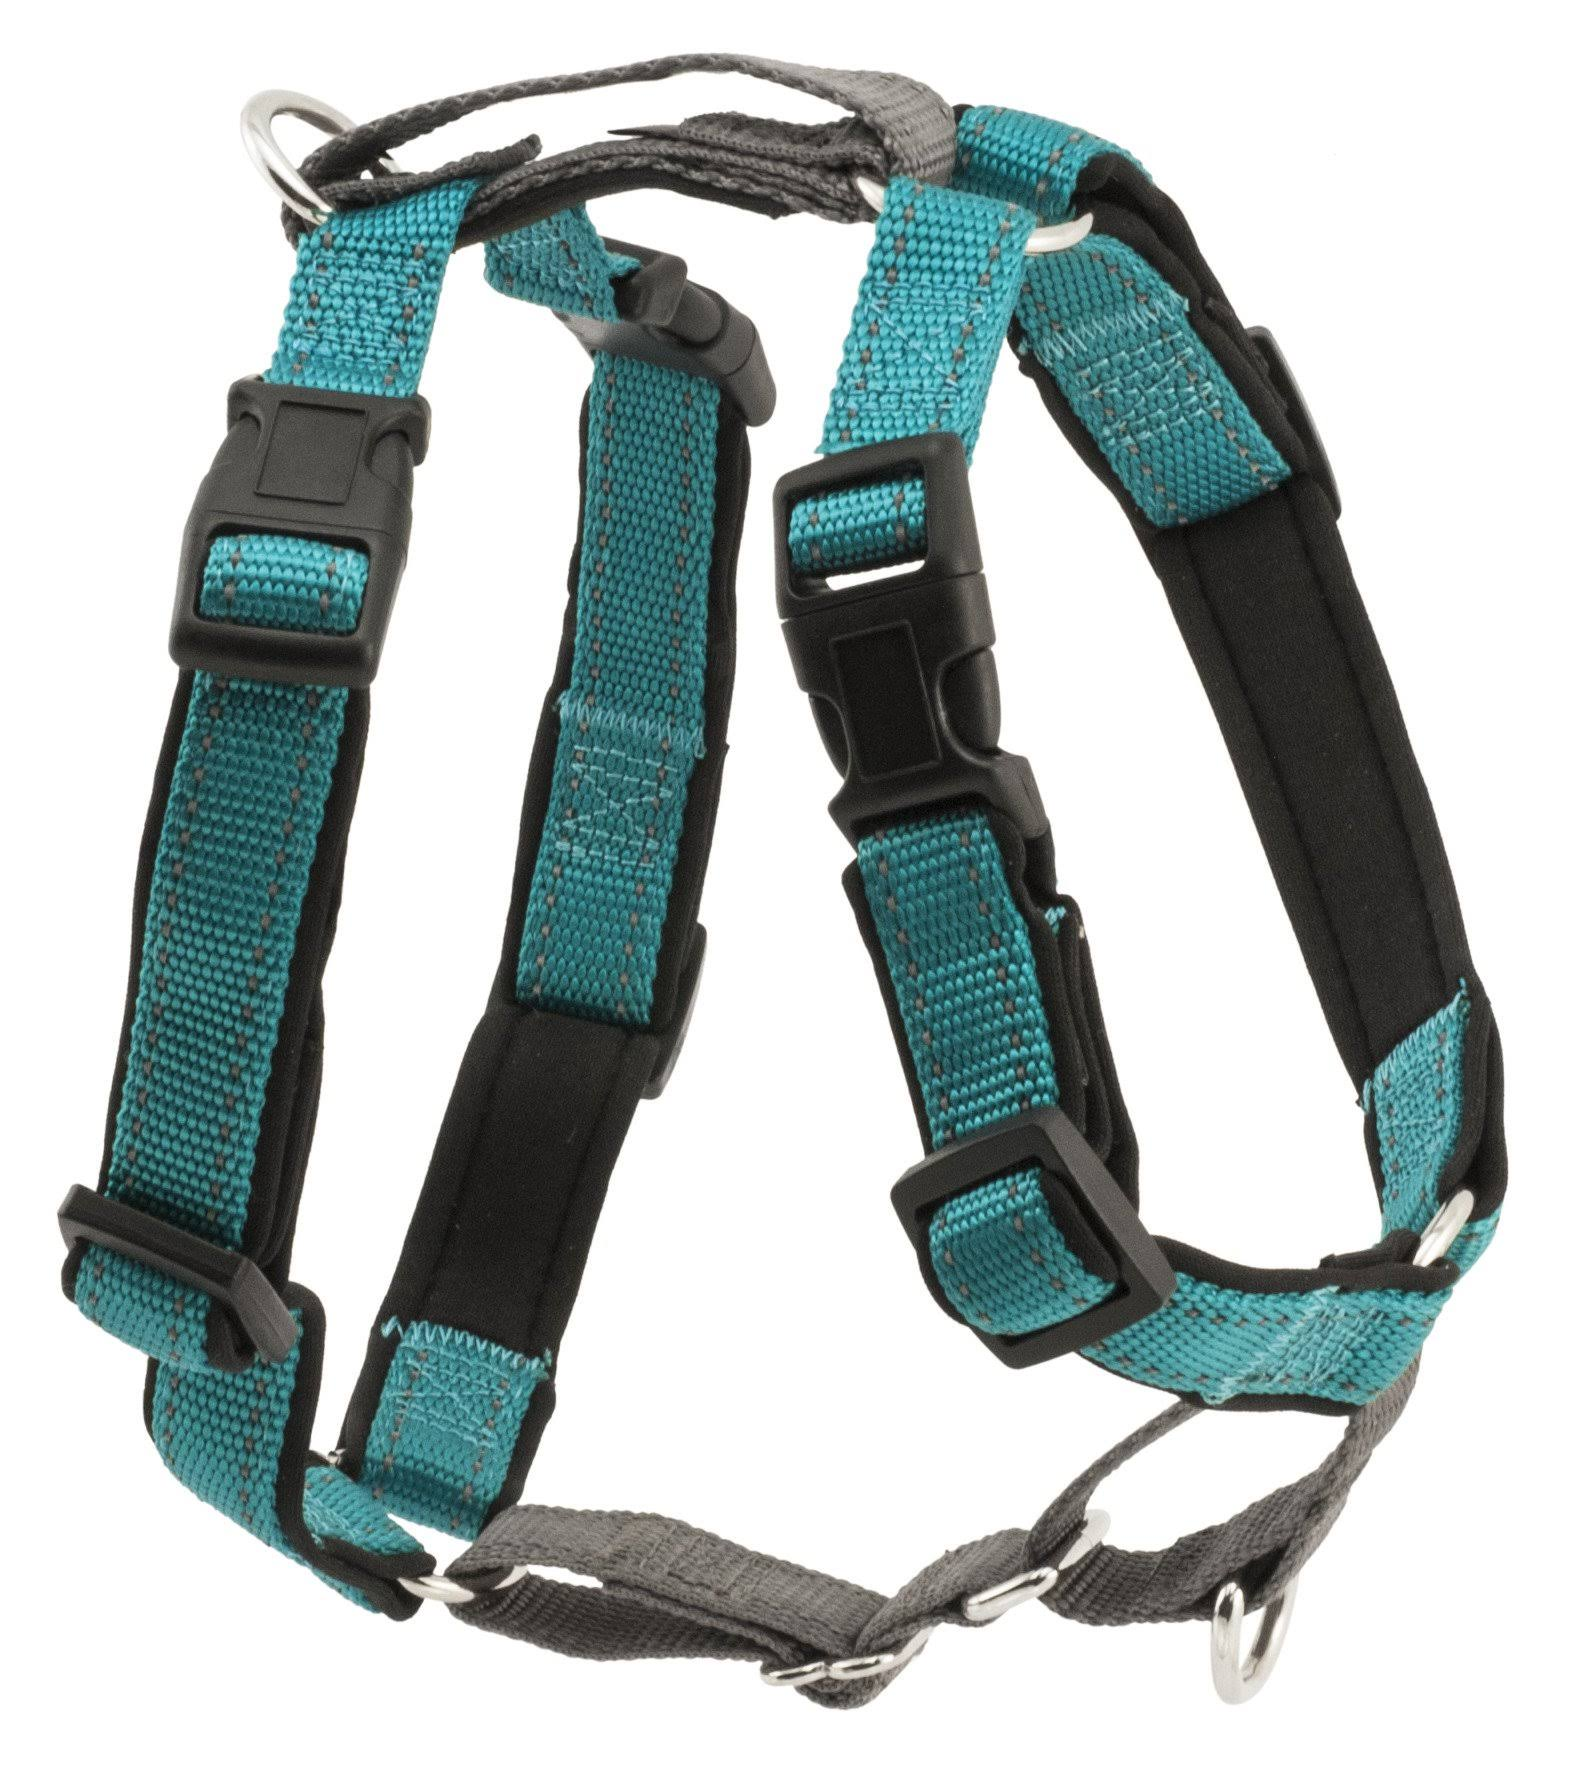 PetSafe 3 in 1 Dog Harness - Teal, Medium